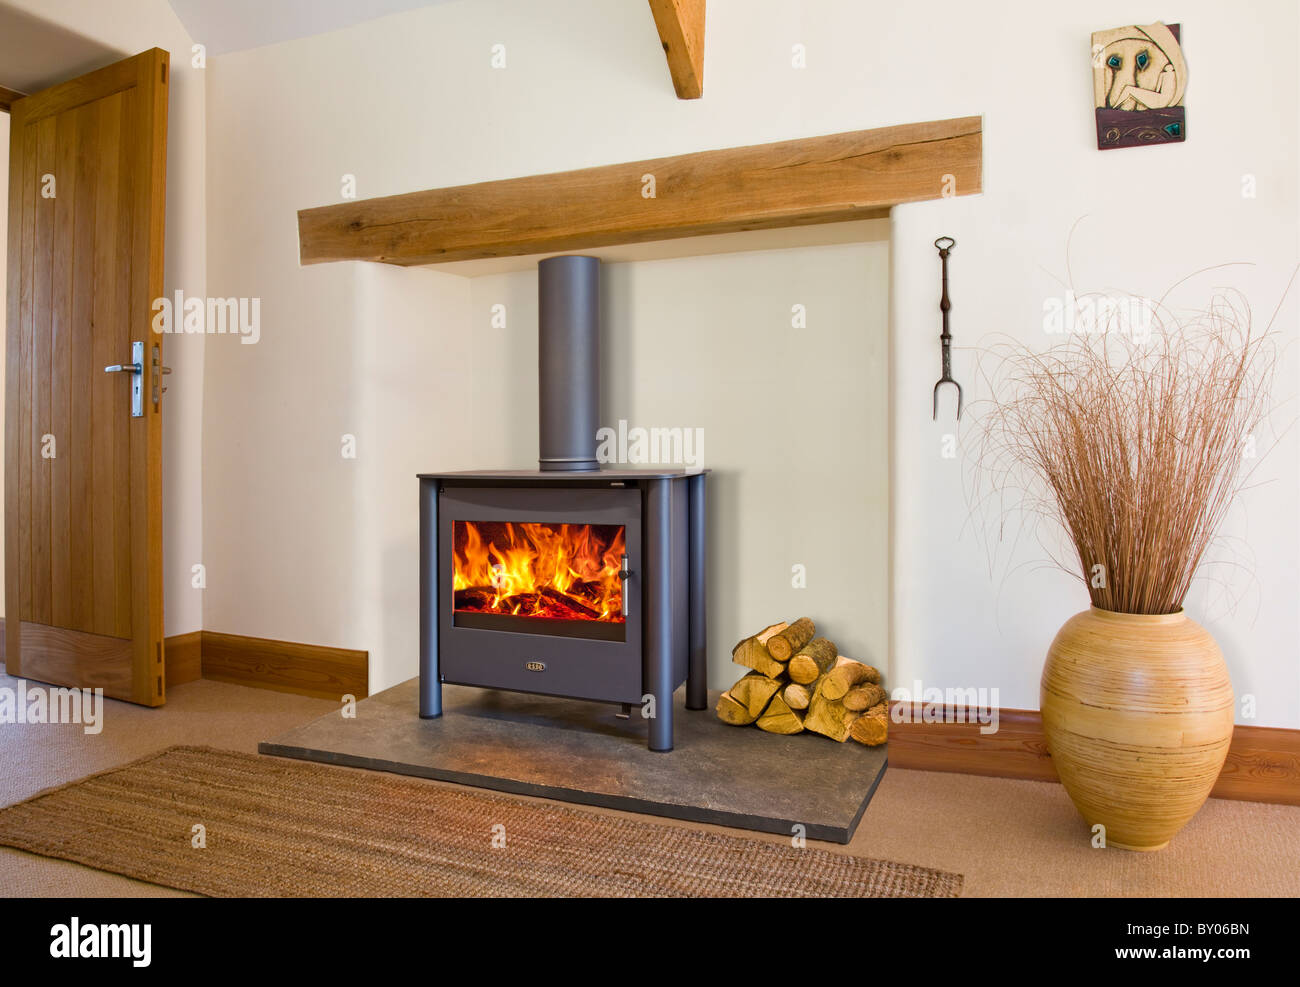 An Esse wood burning stove in a contemporary setting - Stock Image